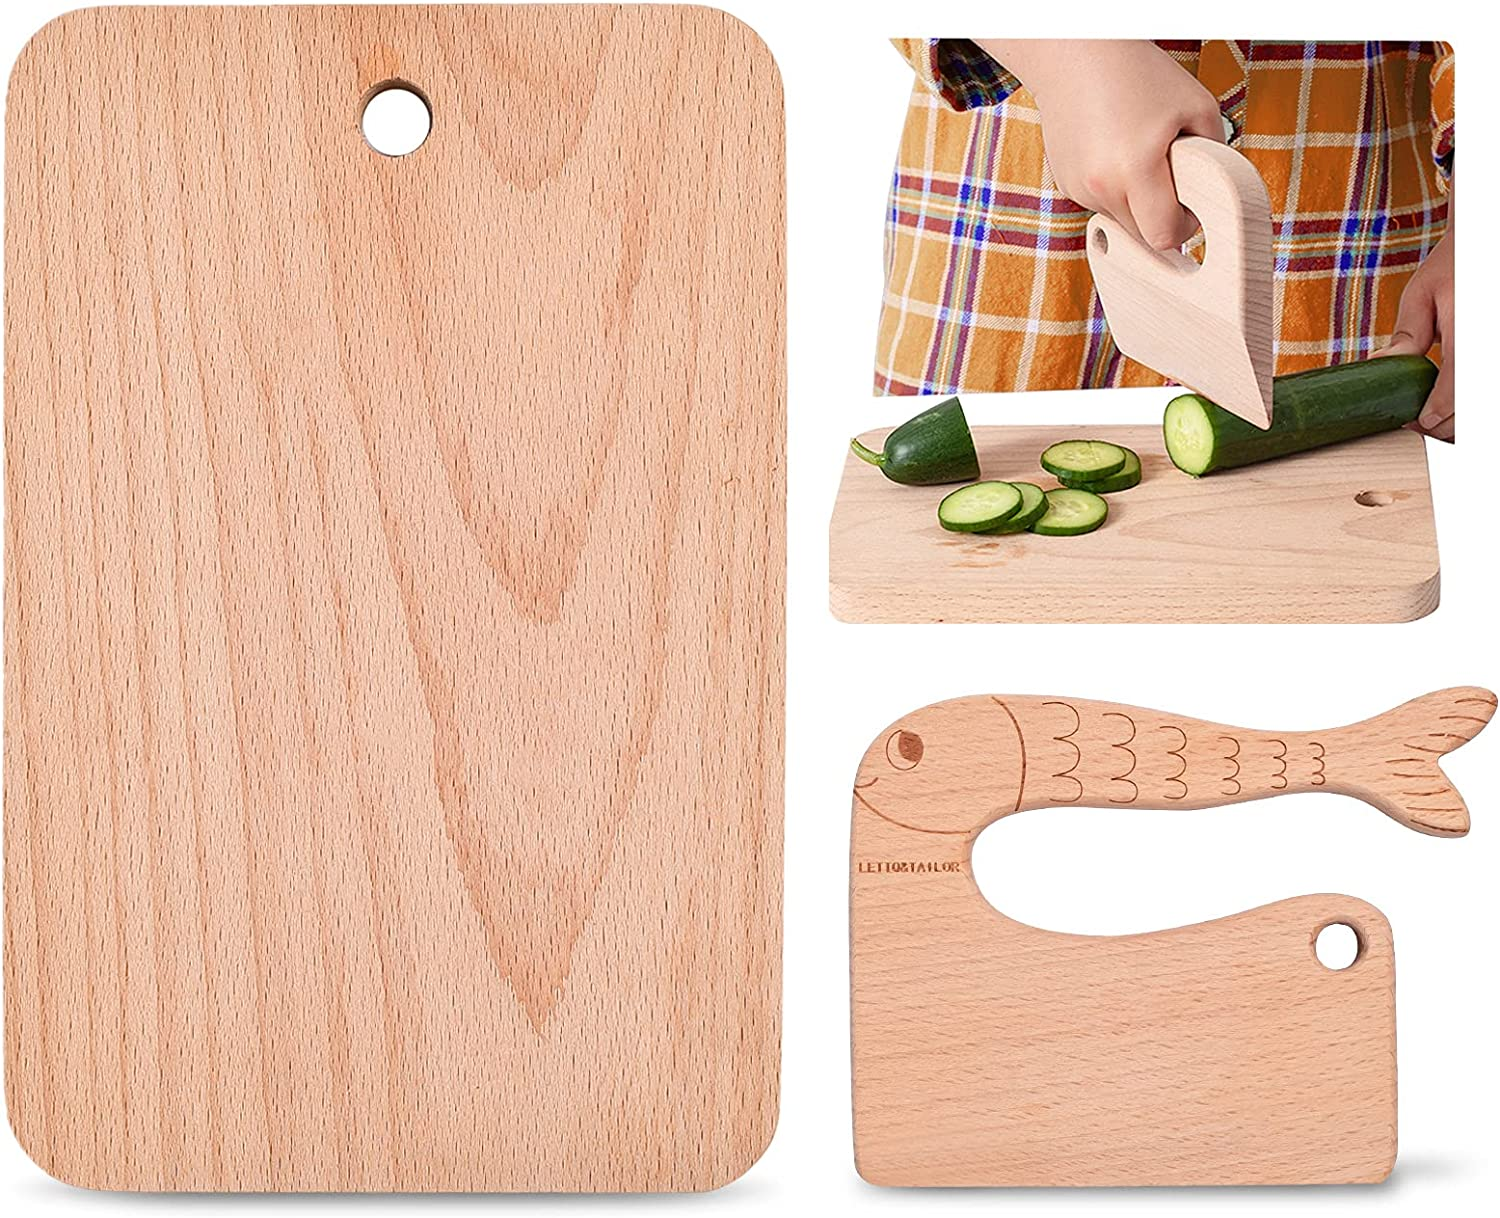 2 Pieces Kids Max 52% OFF Knife Set for Cooking Wood Board with Sa Cutting Max 55% OFF